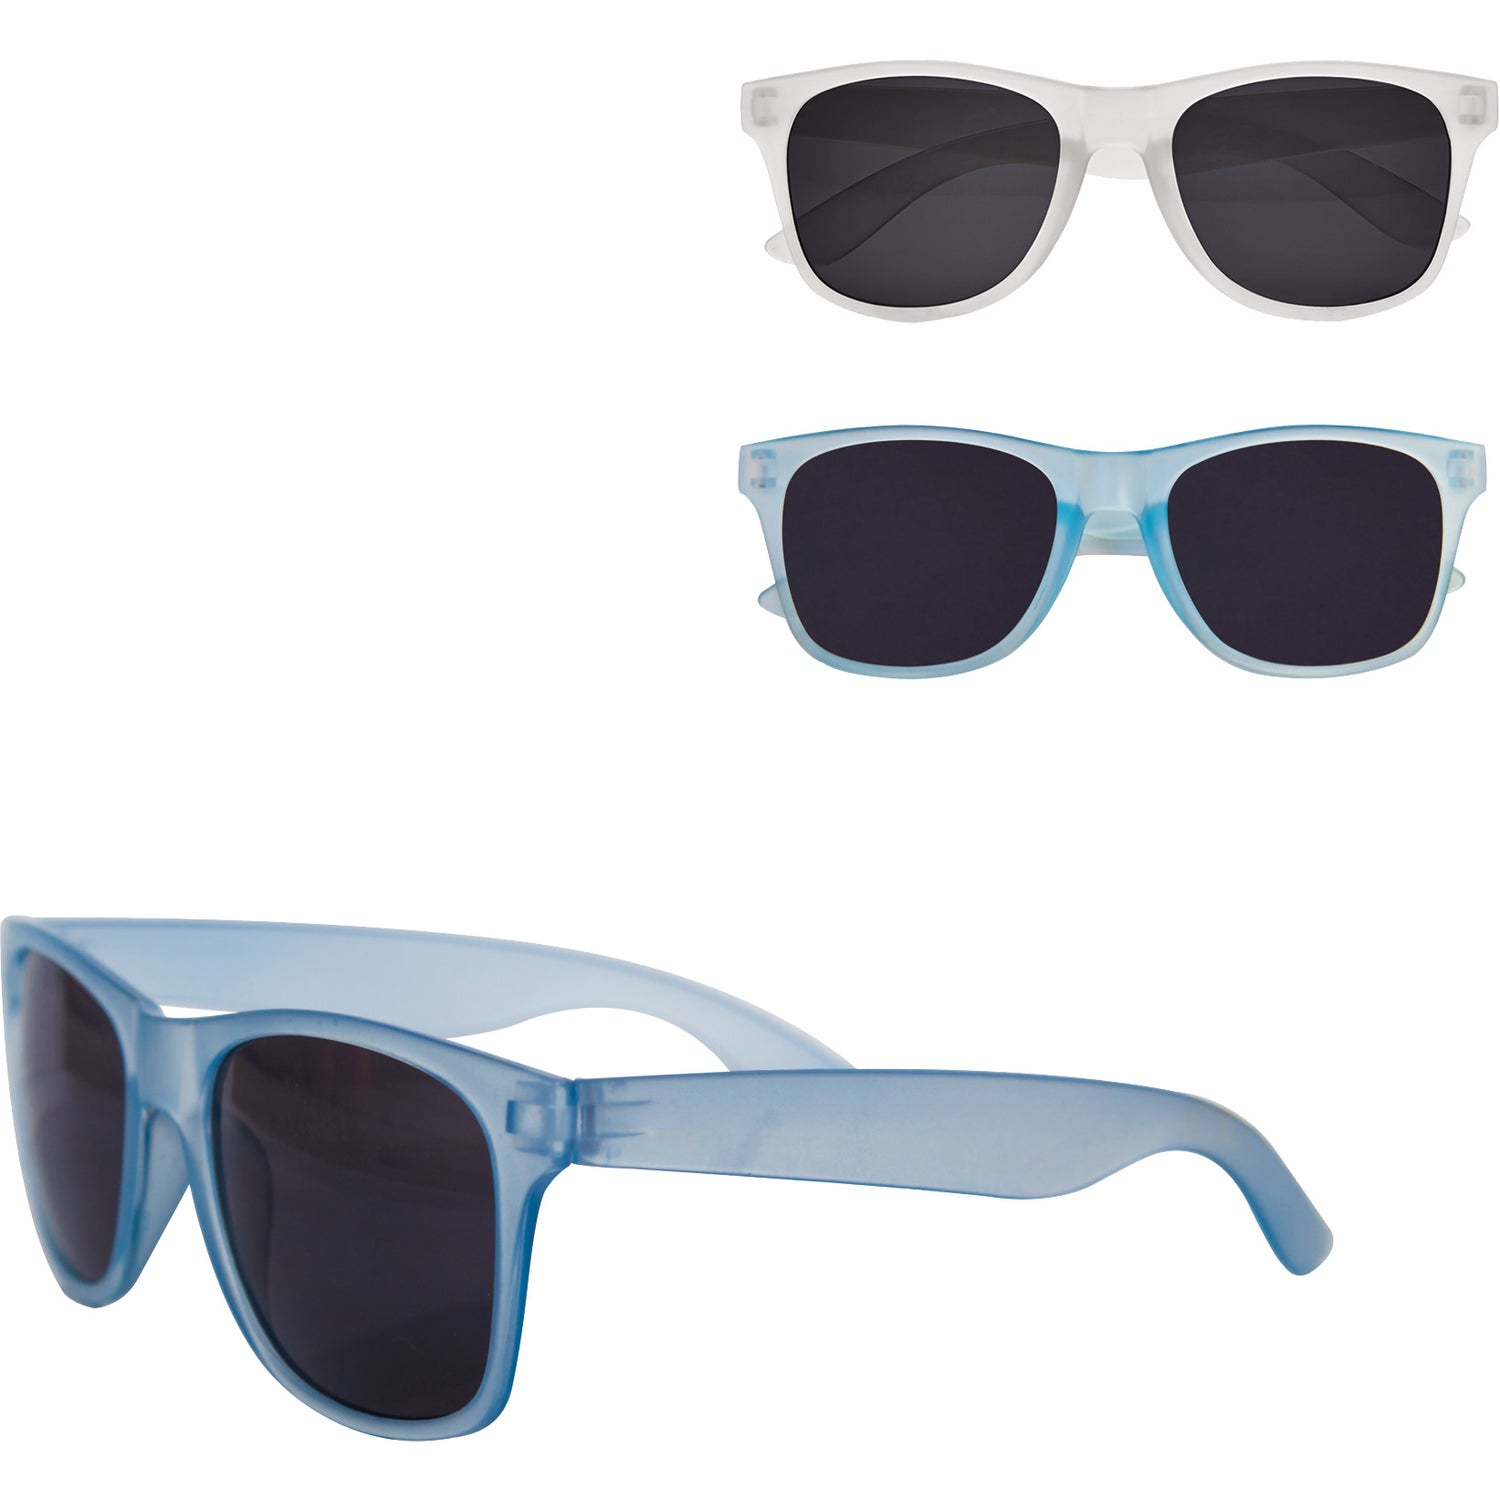 e8dffcf491 Promotional Mood Color Changing Sunglasses with Custom Logo for  1.56 Ea.